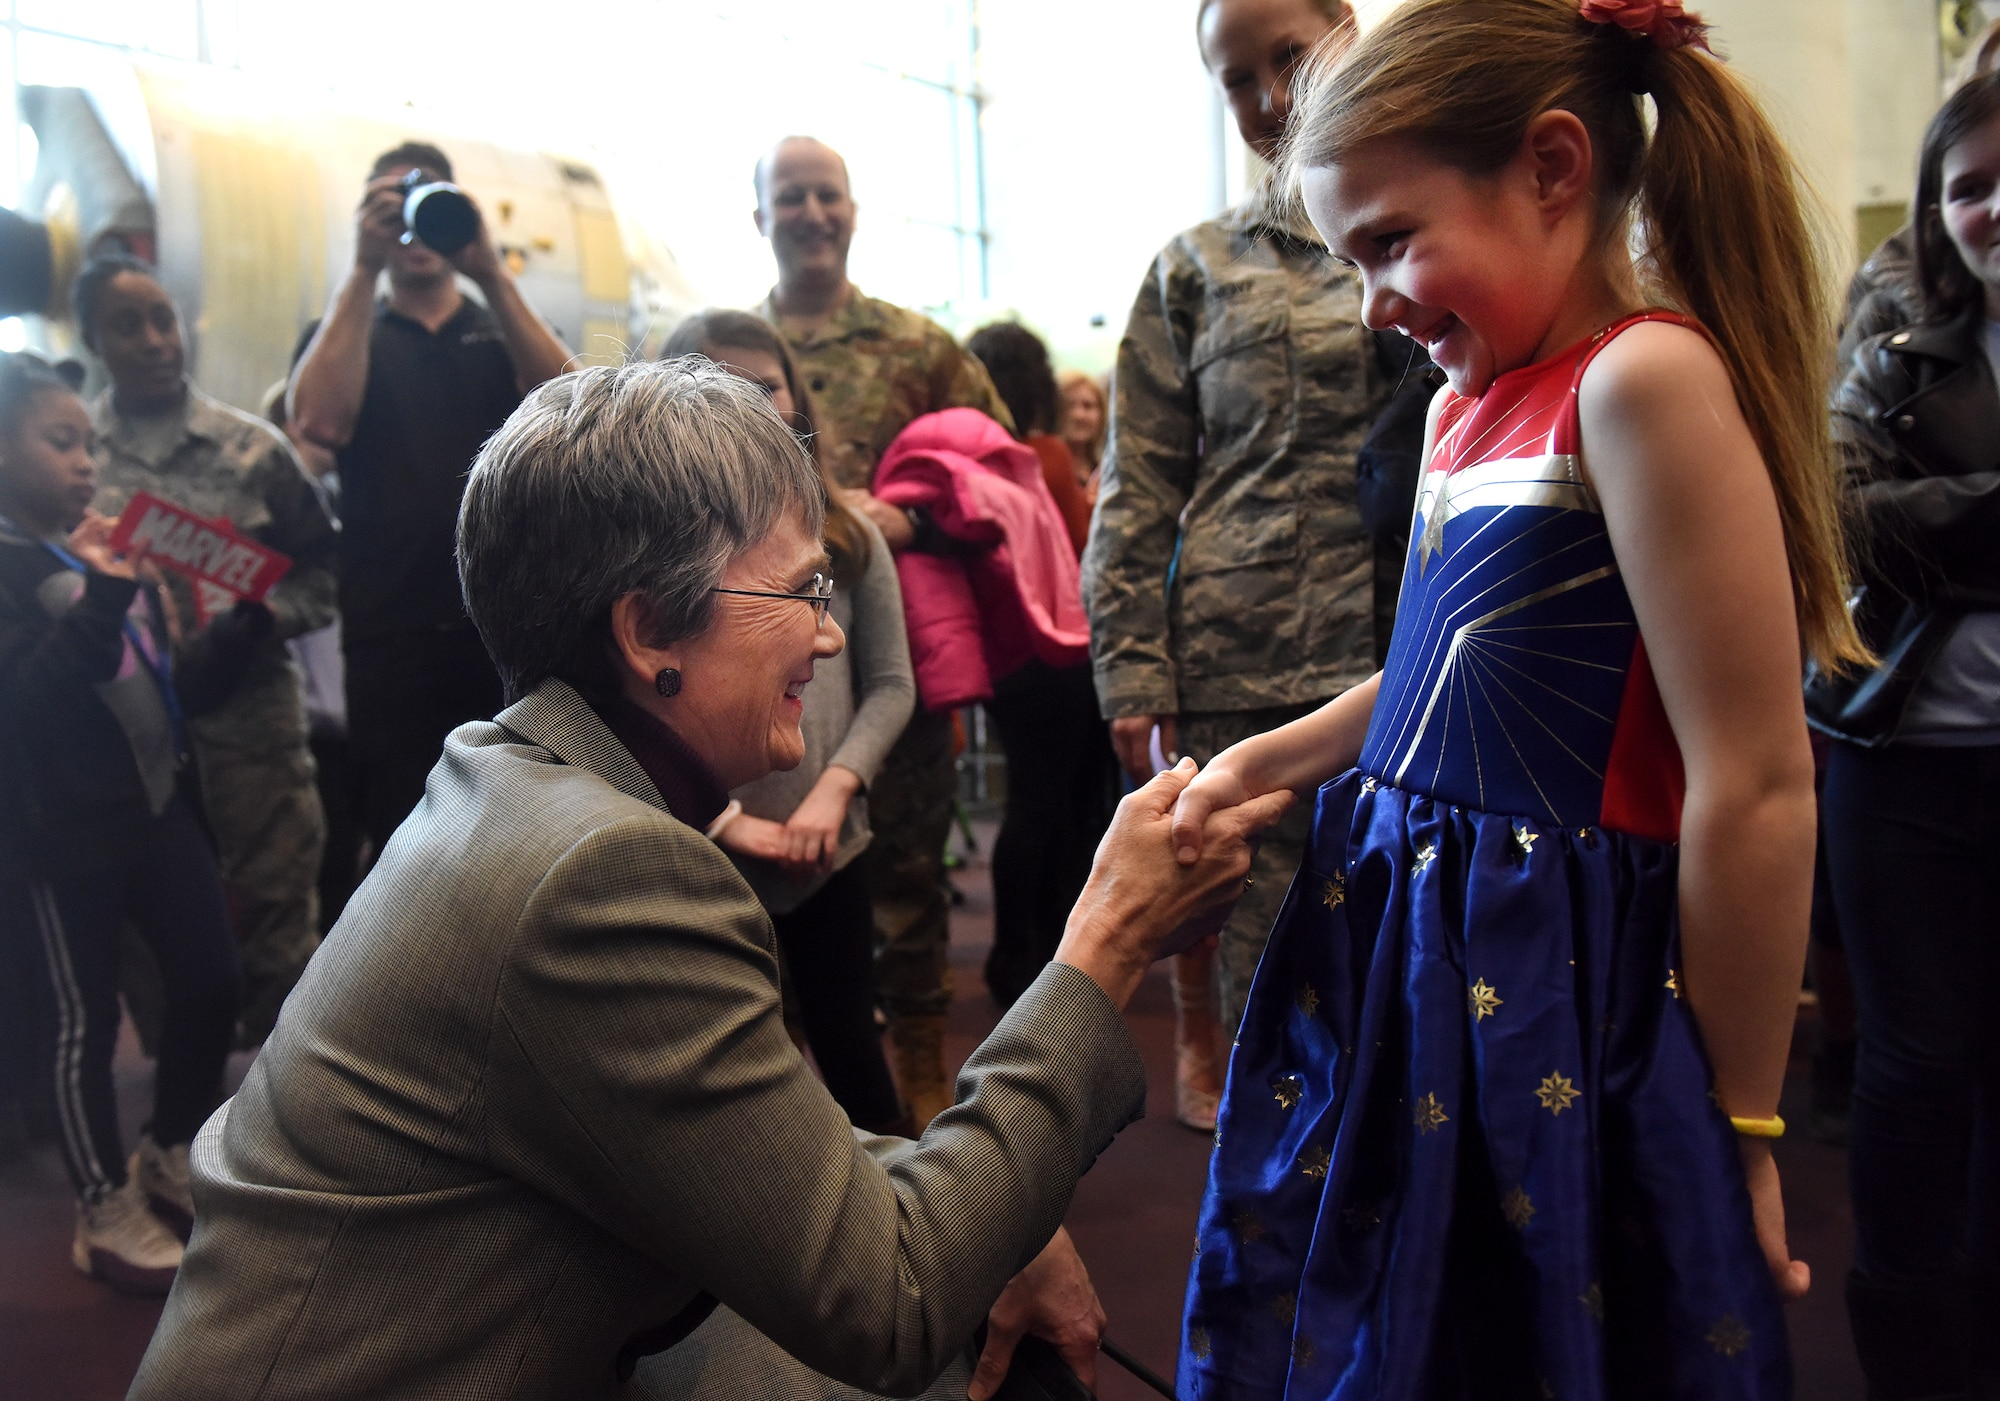 """Secretary of the Air Force Heather Wilson tours the STEM demonstration prior to a screening of the movie """"Captain Marvel"""" in Washington, D.C., March 7, 2019. The demonstration was held to inspire children to serve in the Air Force or STEM-related careers. (U.S. Air Force photo by Staff Sgt. Rusty Frank)"""